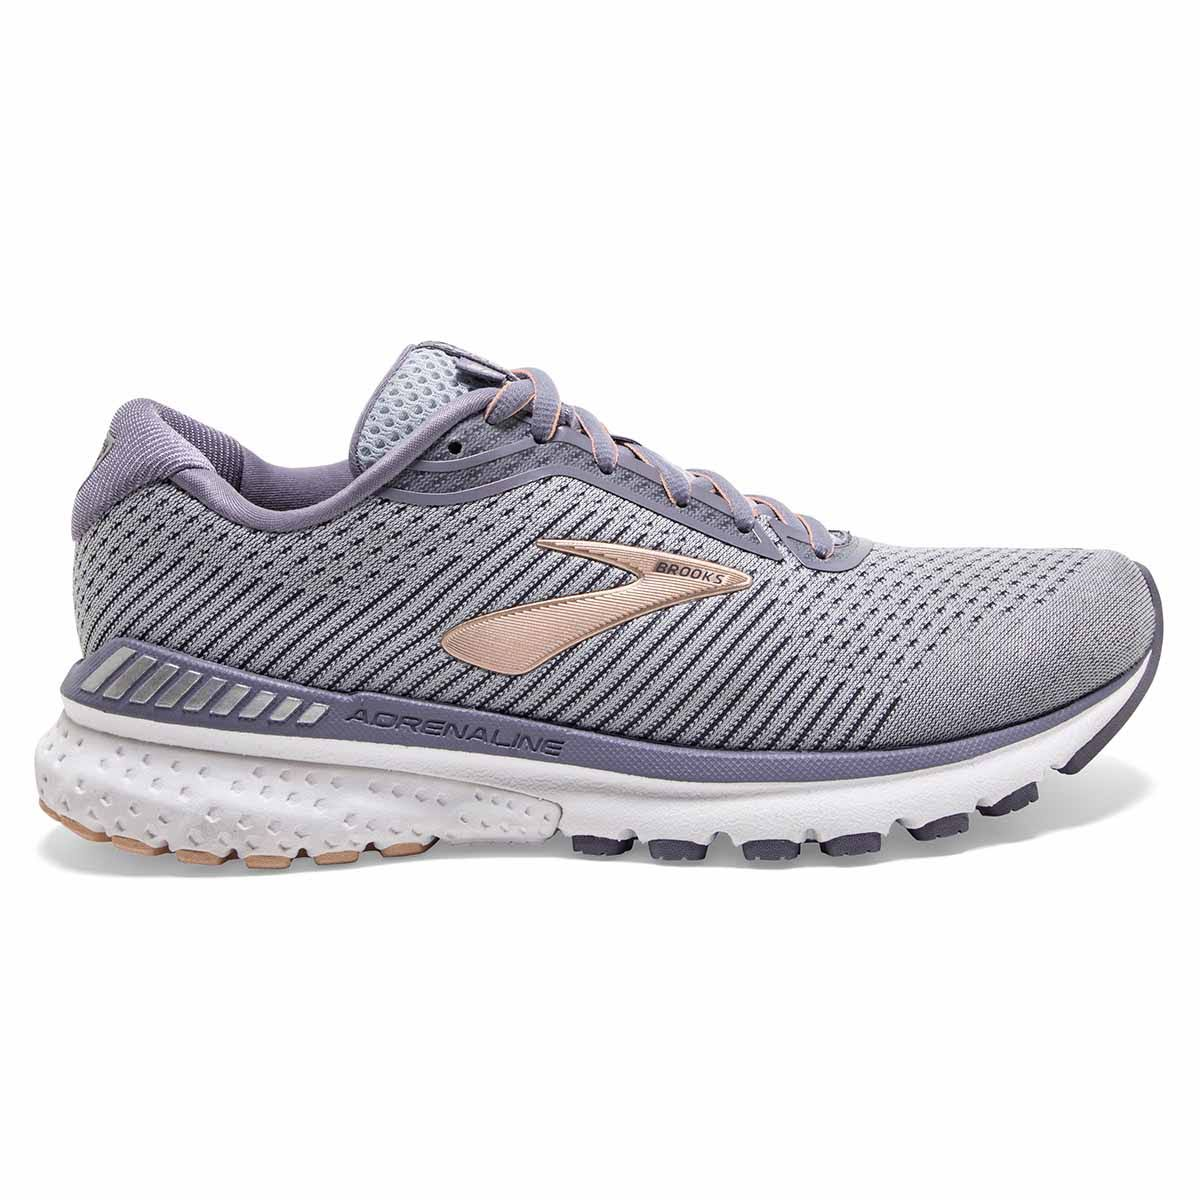 Brooks Women's Adrenaline GTS 20 Running Shoes, Grey - Size 5.5